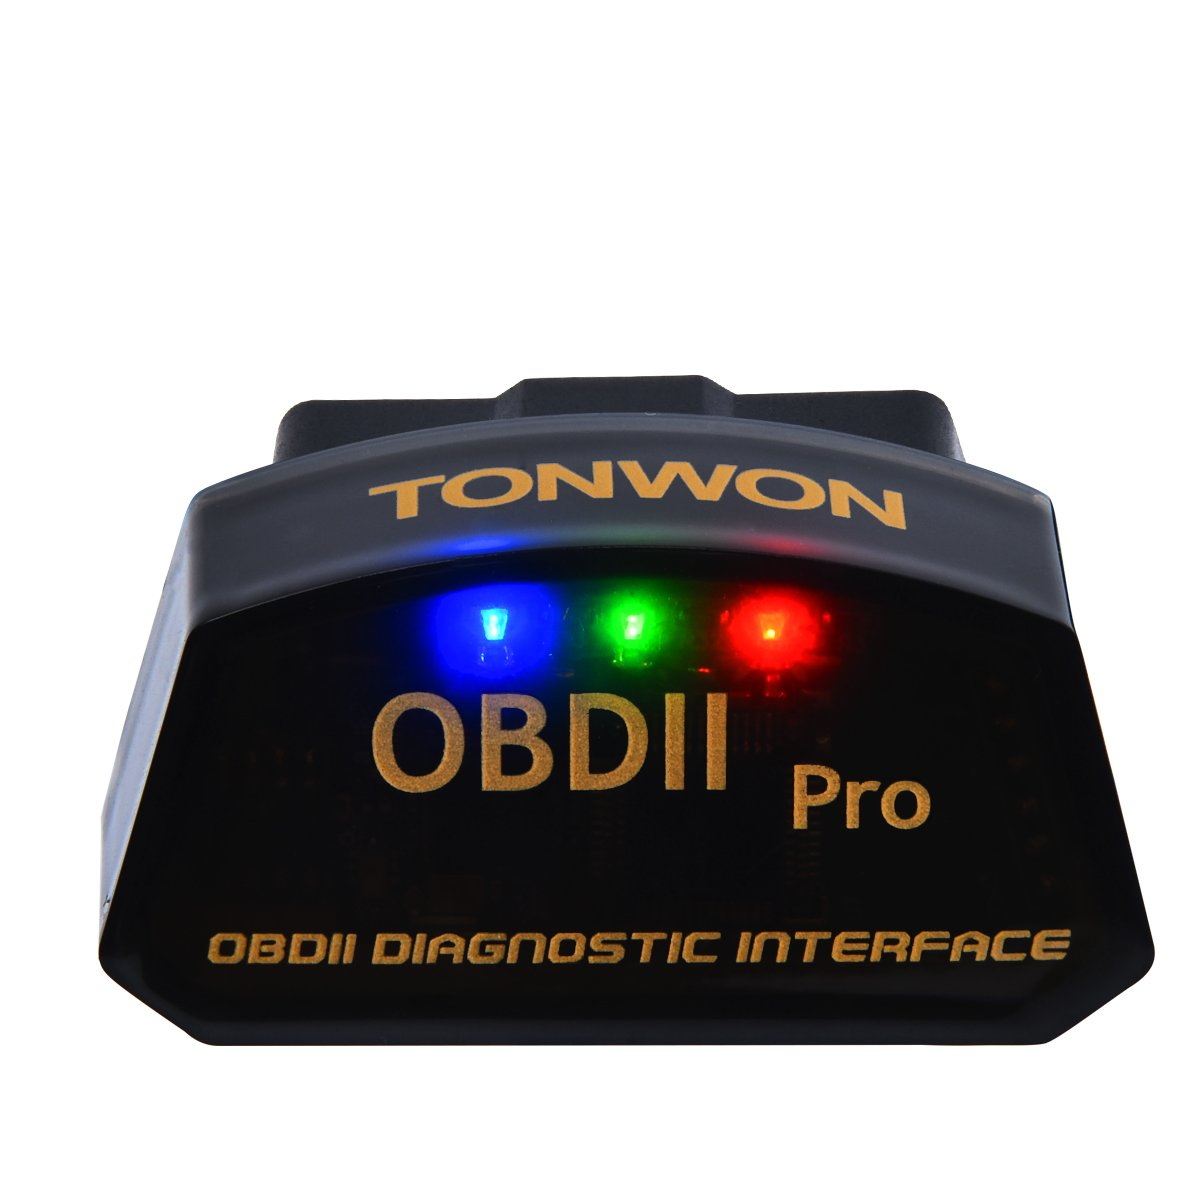 TONWON Pro Wi-Fi OBD2 ELM327 Car Fault Code Reader for iOS and Android TonwonEU WiFi